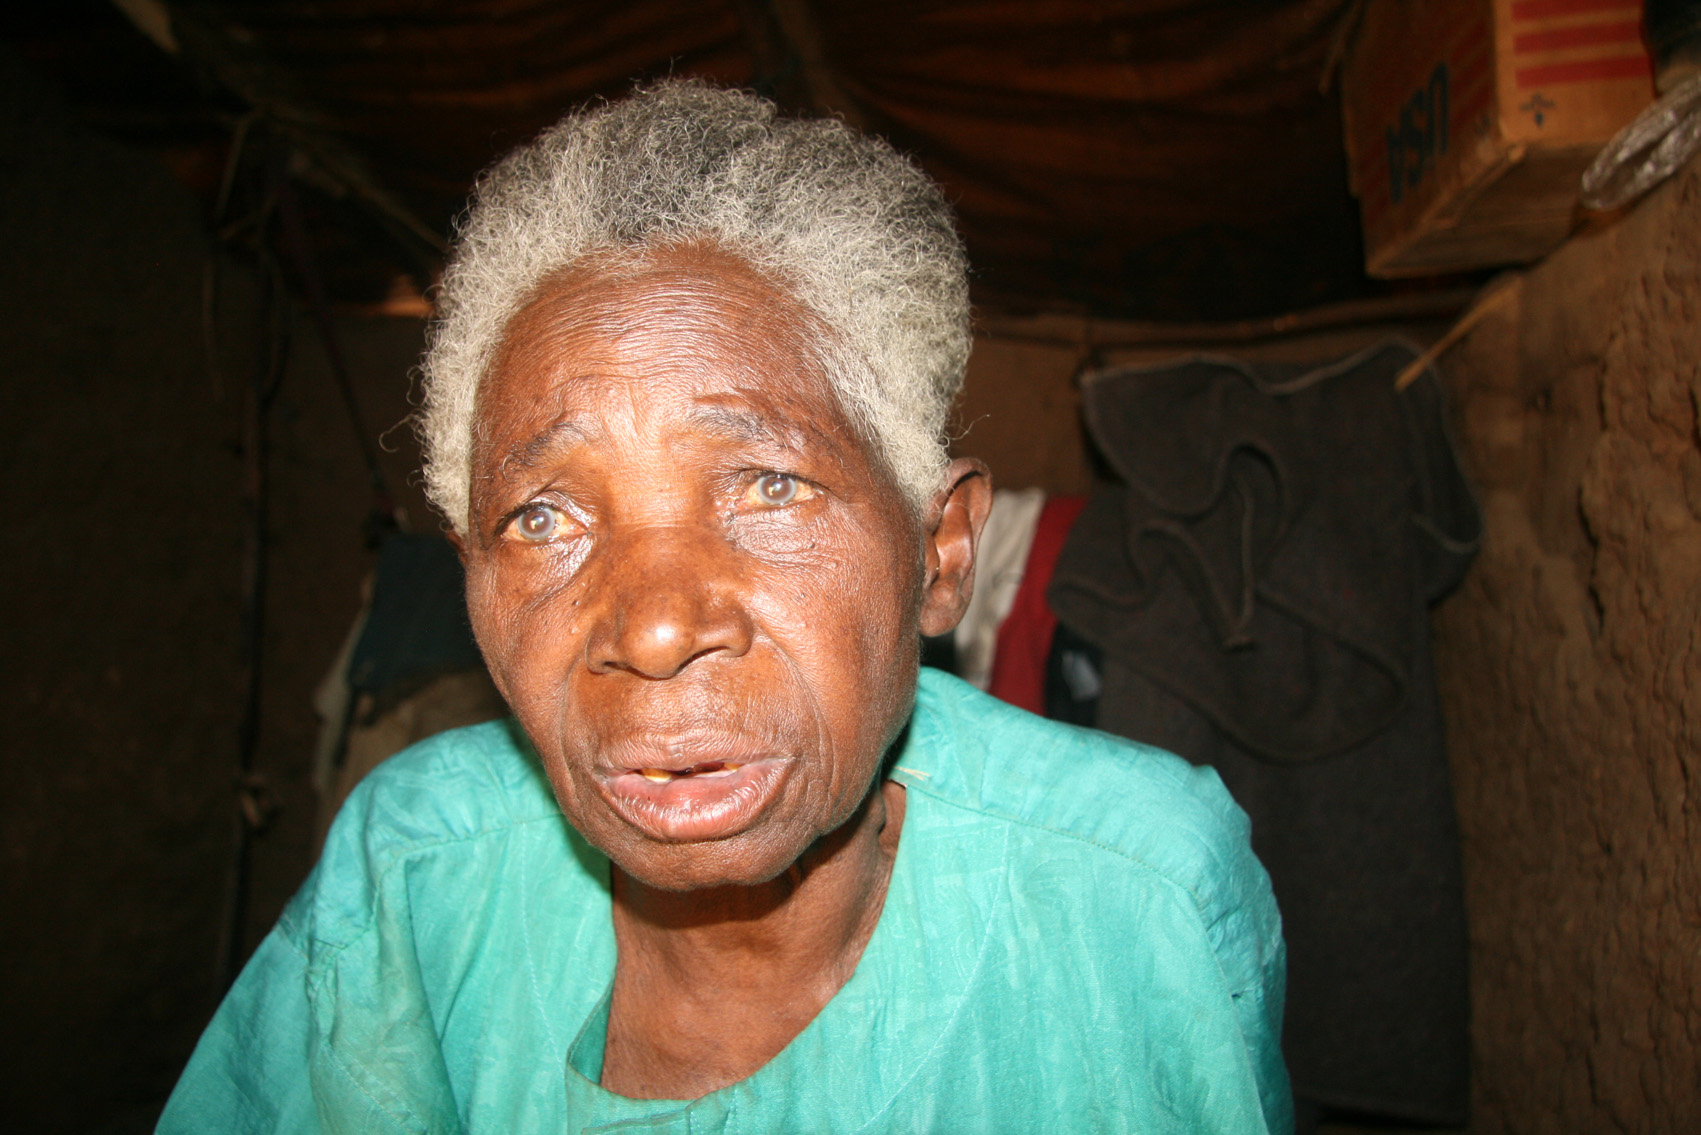 Pherebonia Nyiramatabaro, 85, a Rwandan refugee living in the Juru A camp village in Nakivale refugee settlement in southwestern Uganda